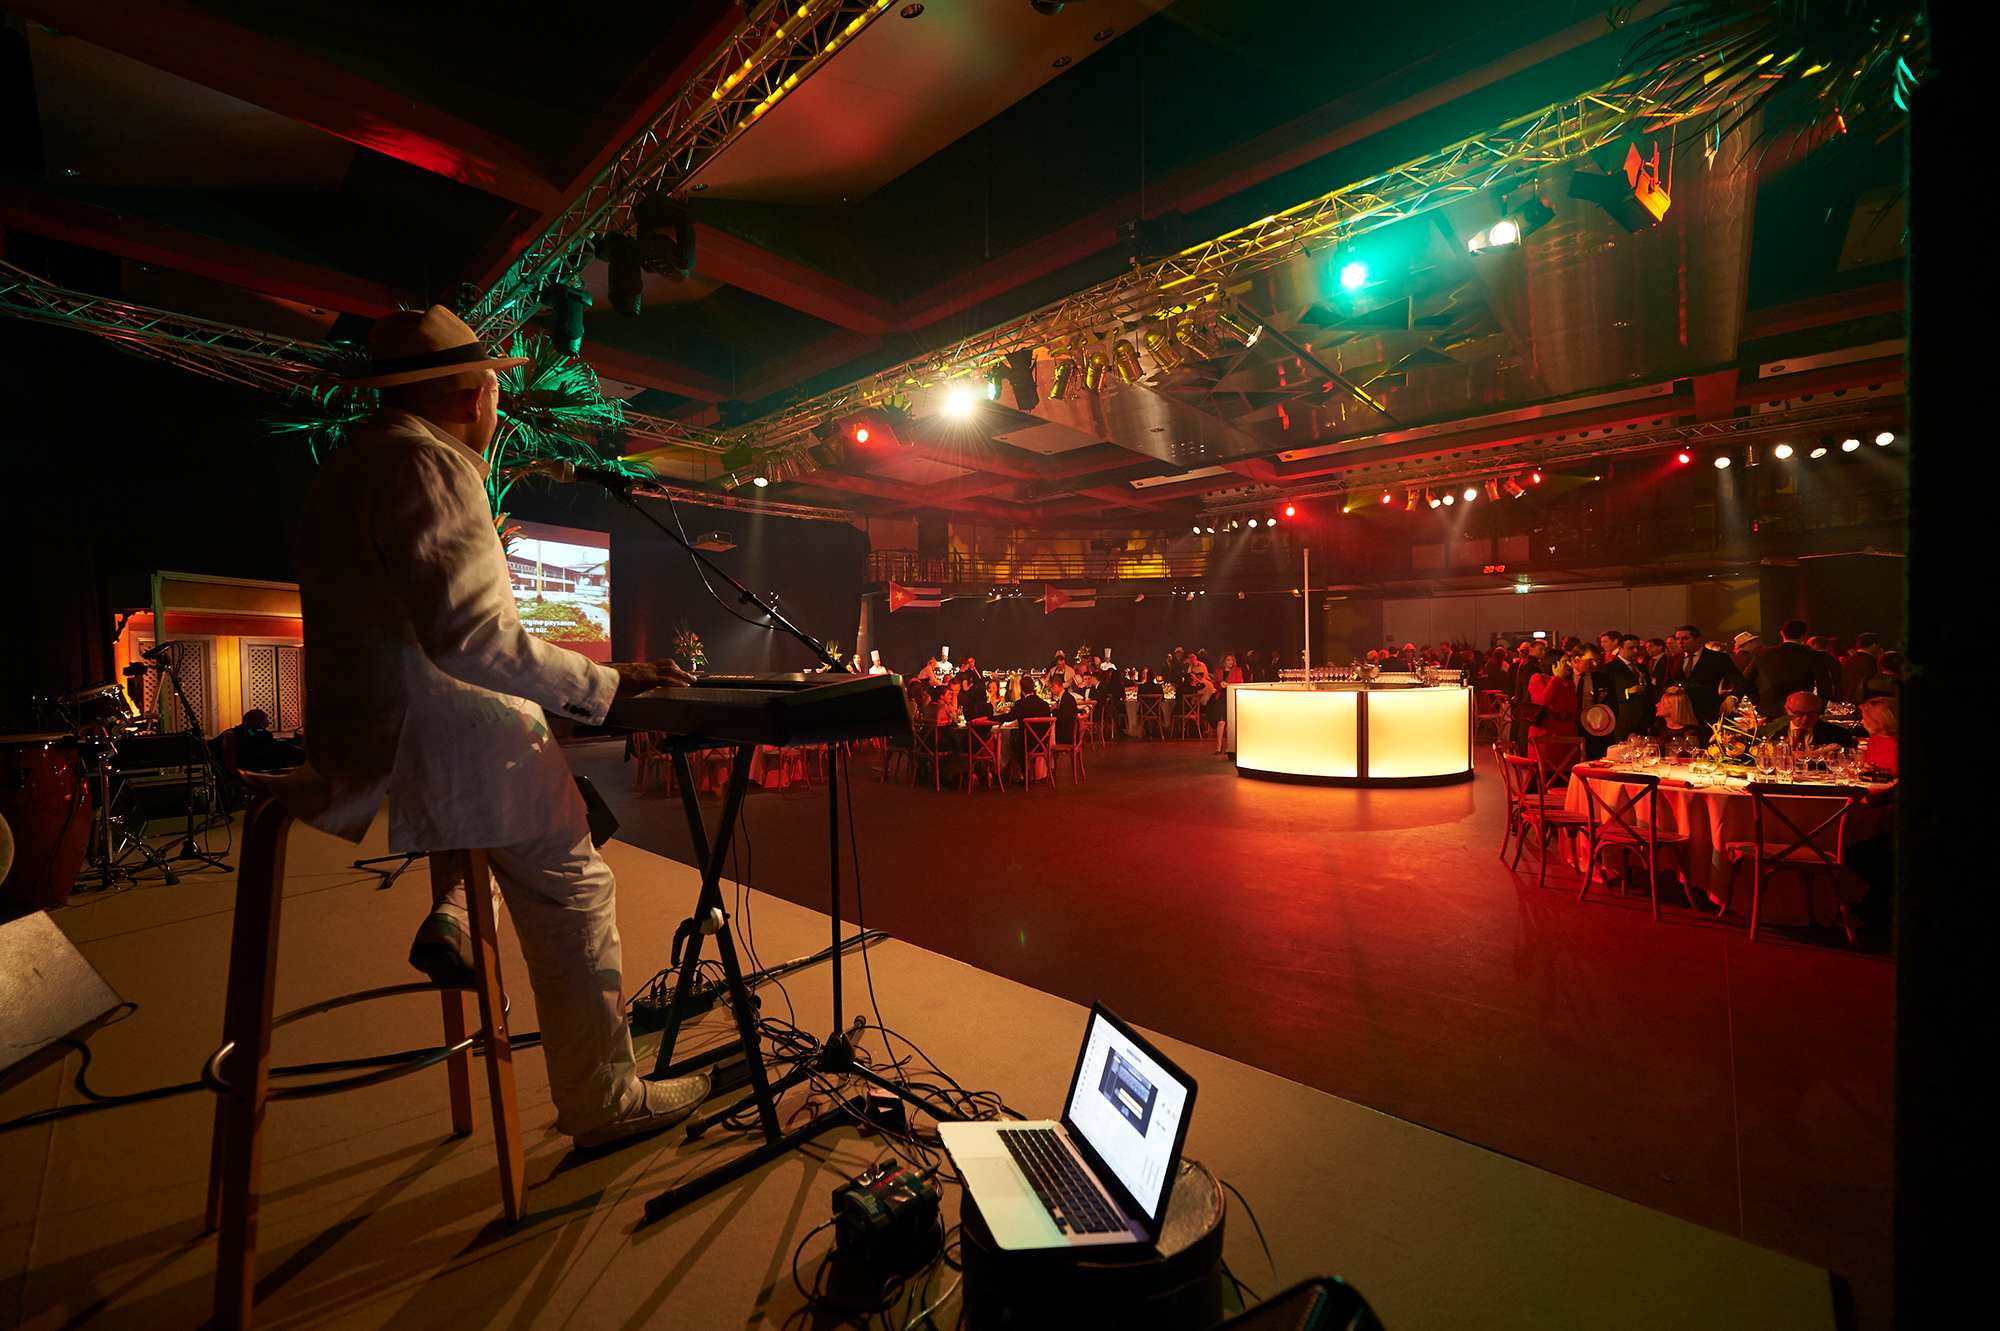 xmas-party-atoz-2016-037-luxembourg-event